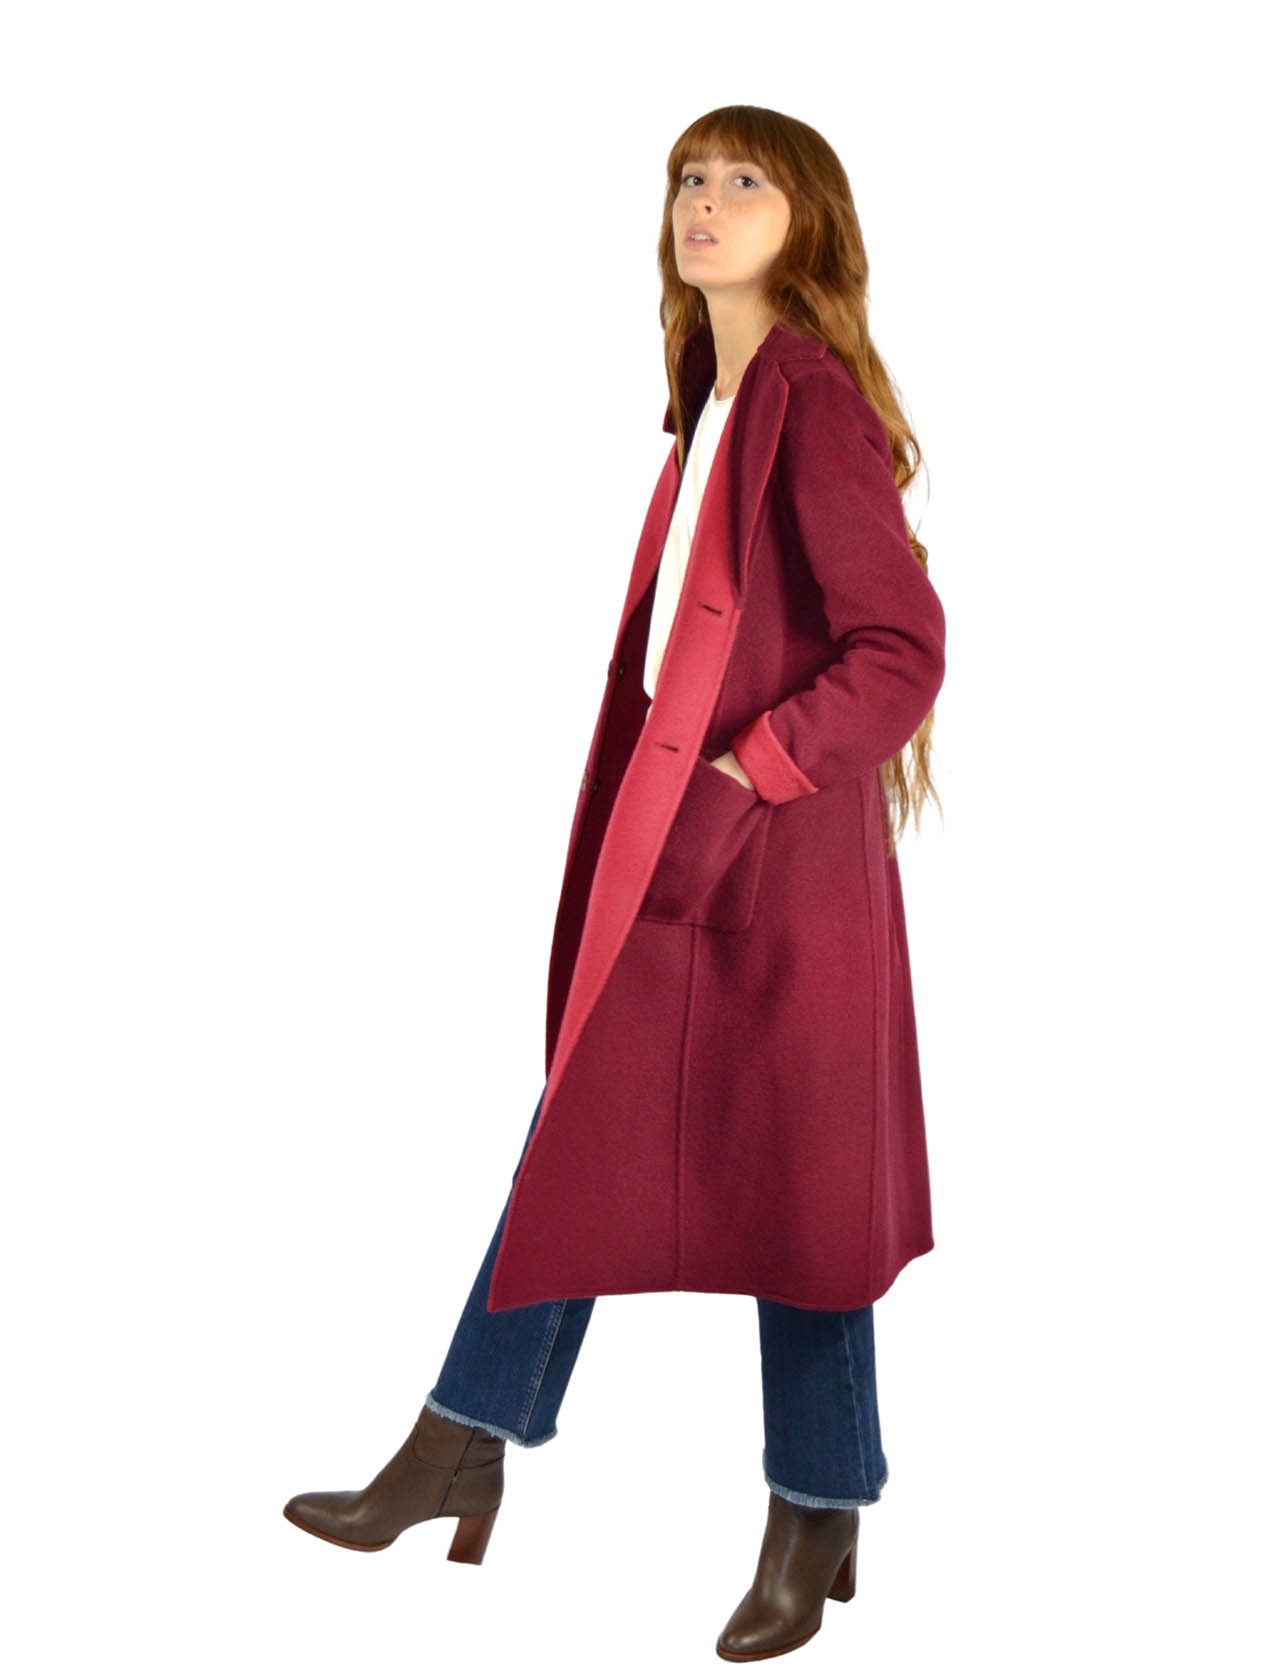 Women's Burgundy Coat Maliparmi | Coats and jackets | JB53072018230A33